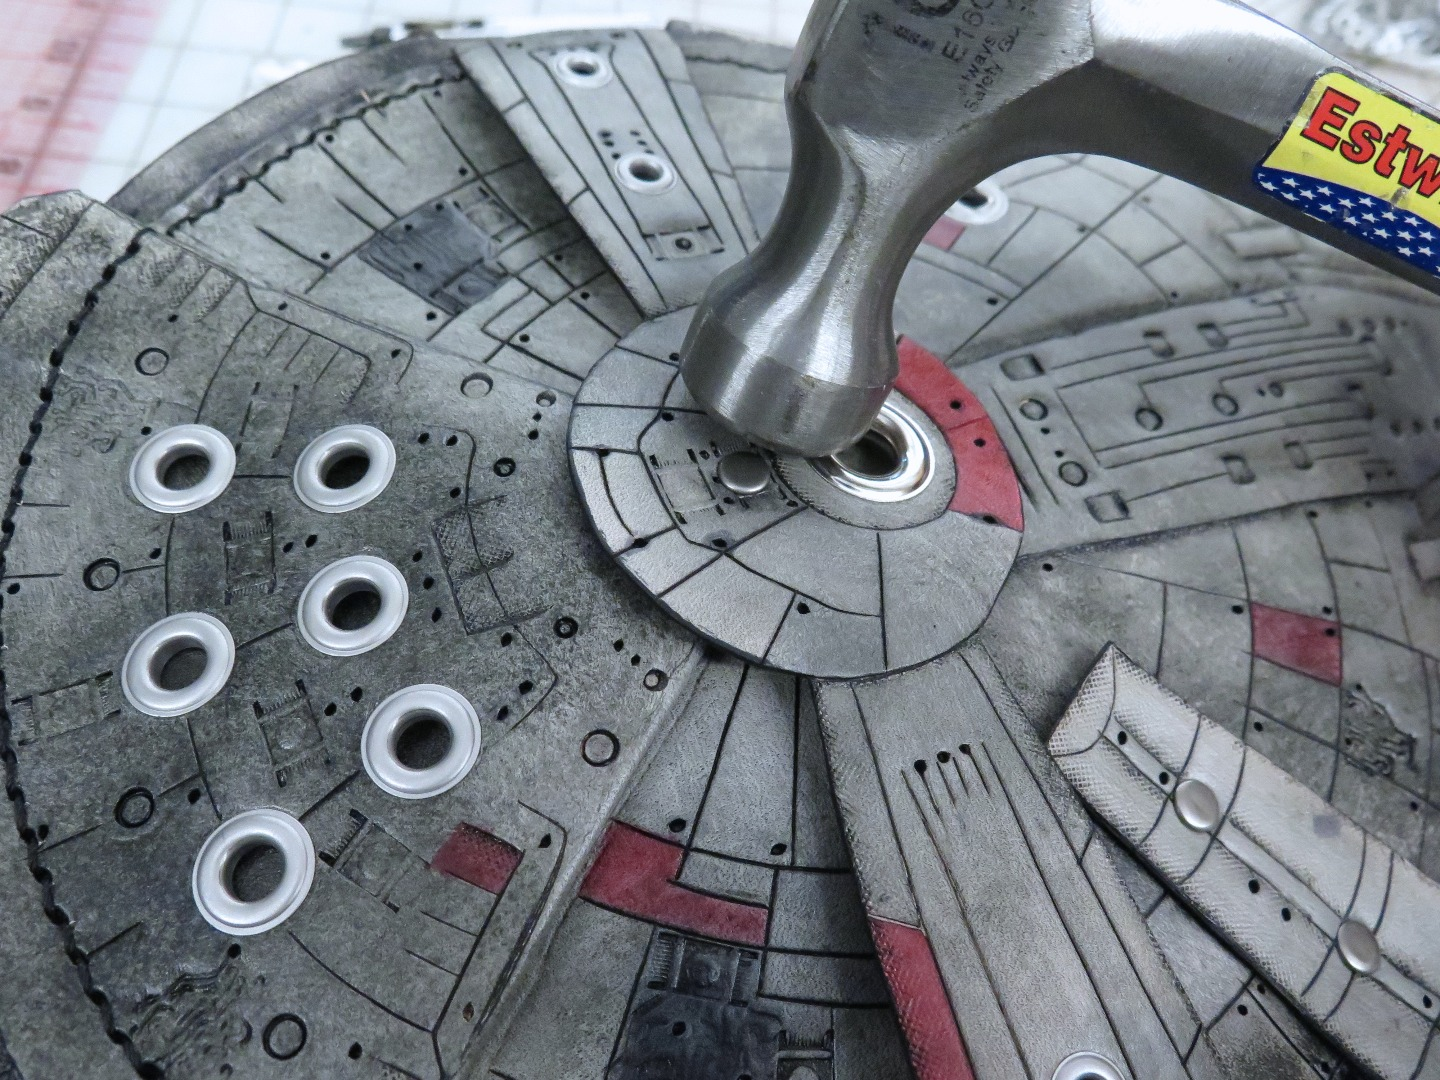 Picture of Attaching the Central Gun Well and Escape Pods